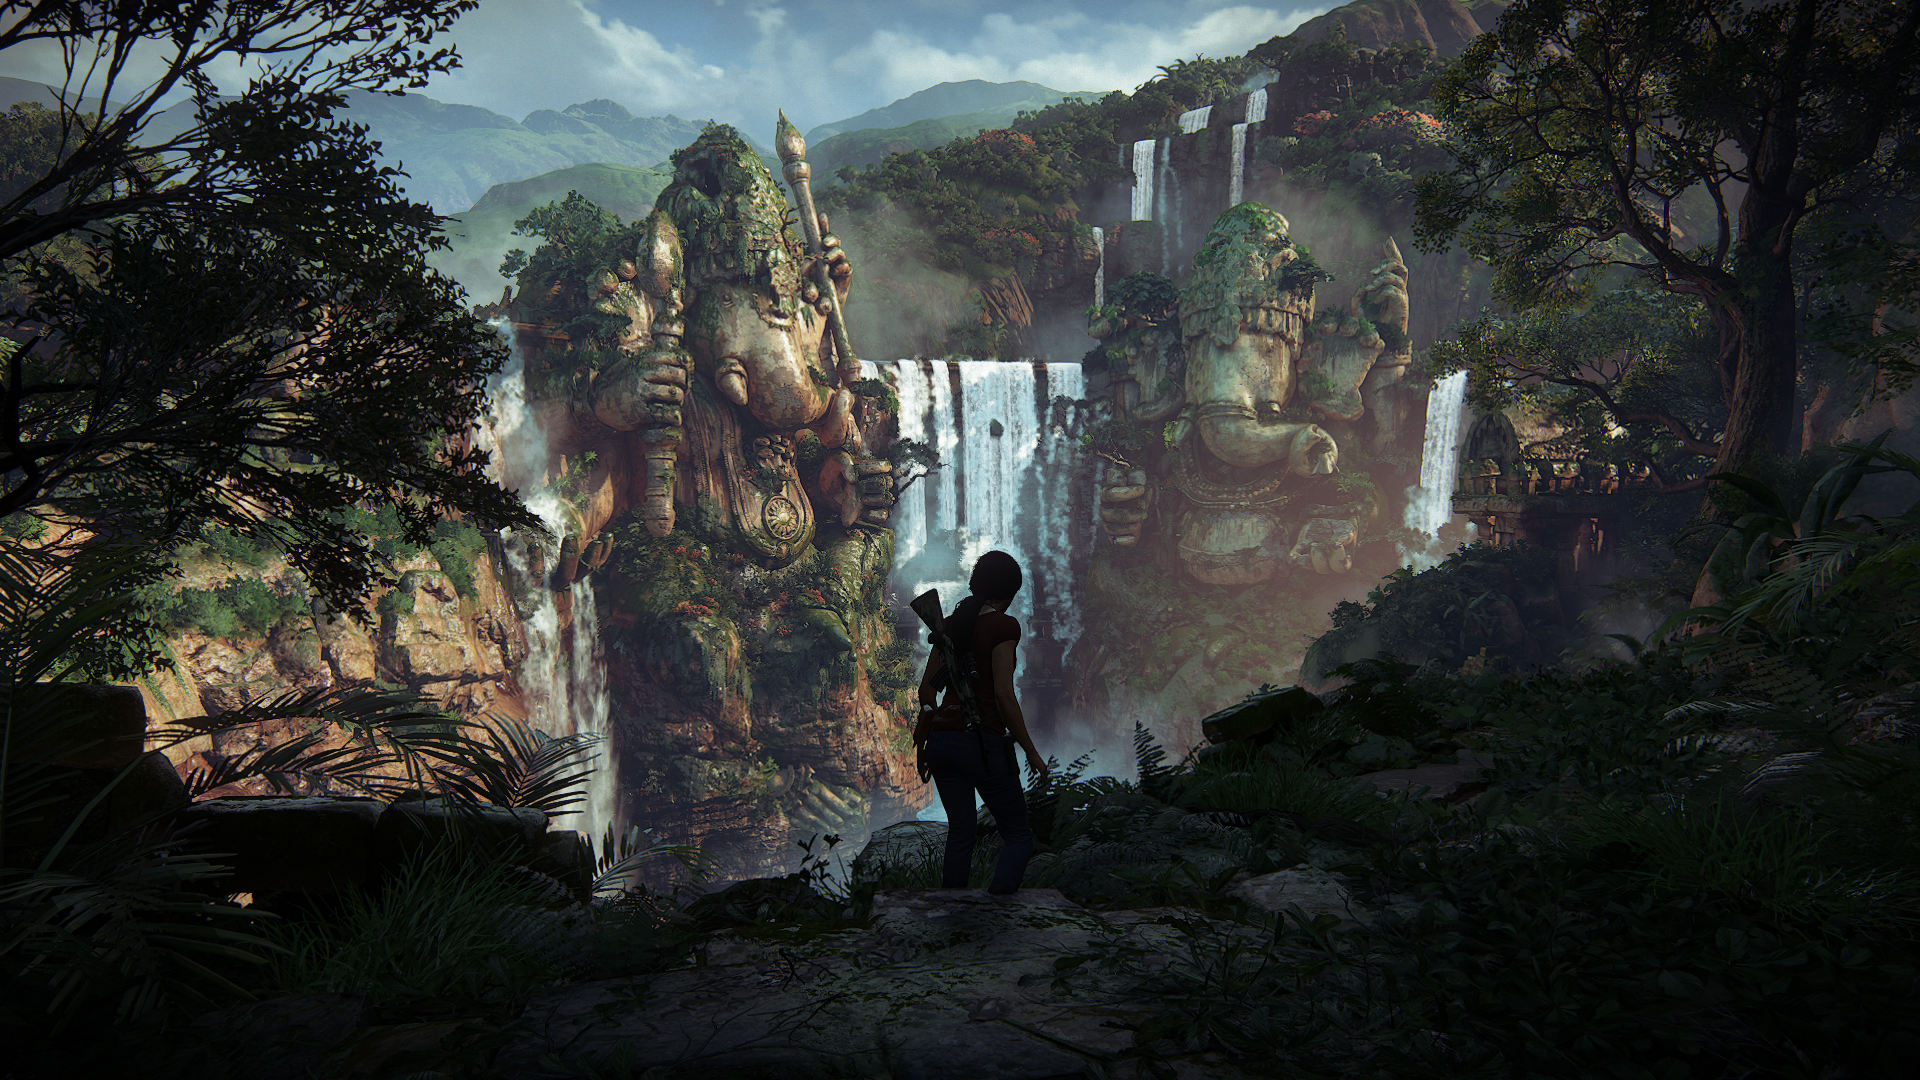 Uncharted Lost Legacy Wallpaper: Uncharted: The Lost Legacy In-Game Screenshots Are